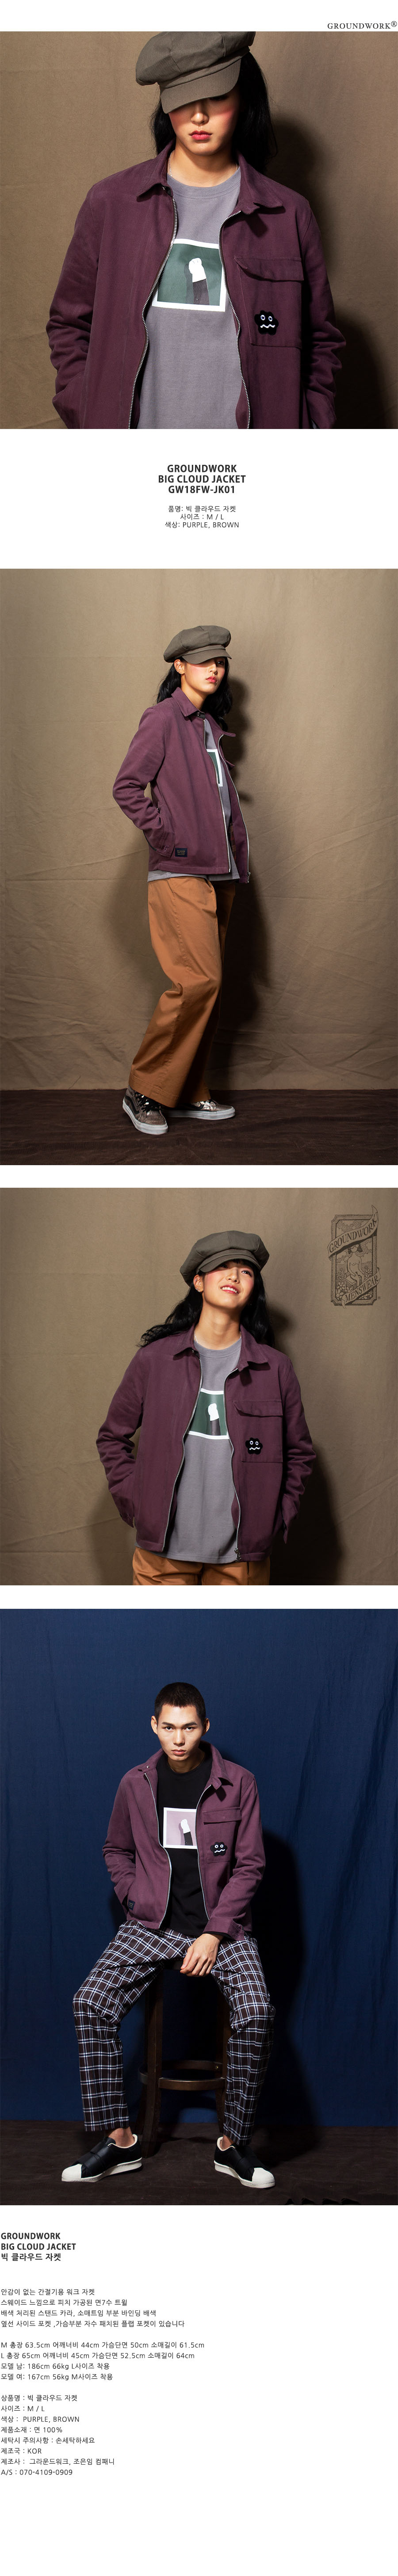 그라운드워크(GROUNDWORK) BIG CLOUD JACKET in Purple